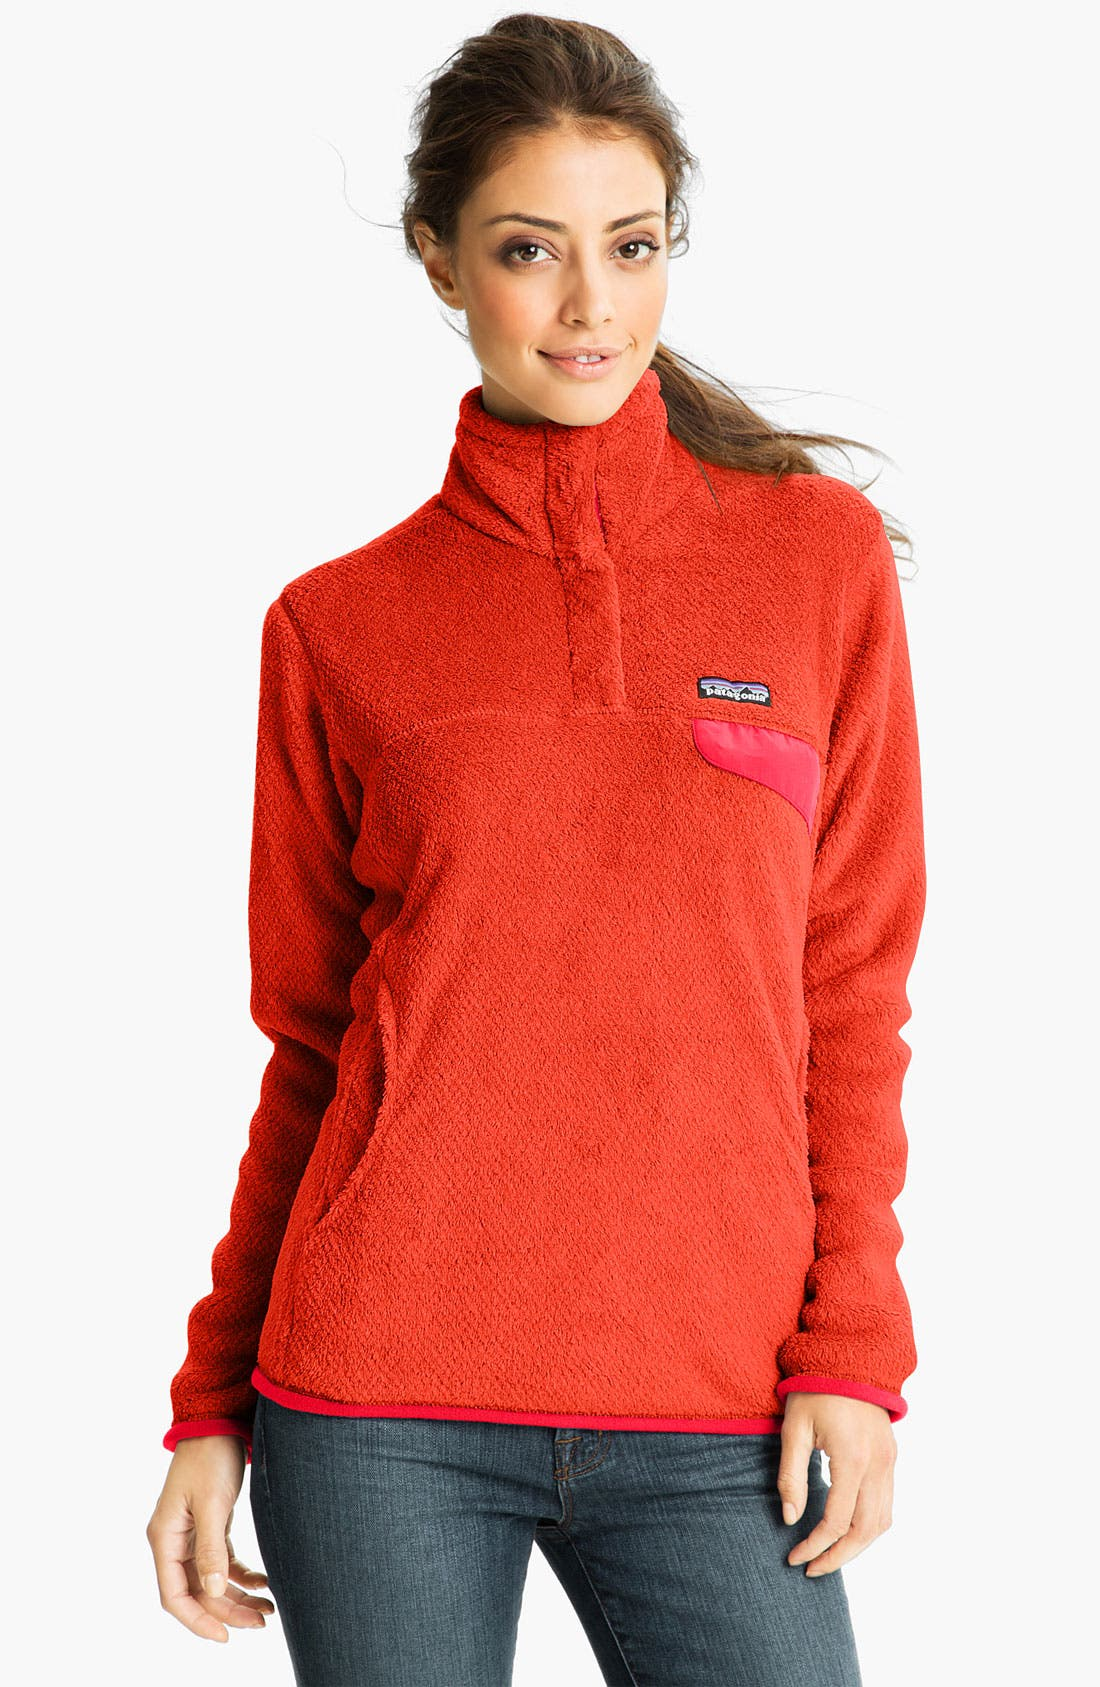 Re-Tool Snap-T<sup>®</sup> Fleece Pullover,                         Main,                         color, Crawdad